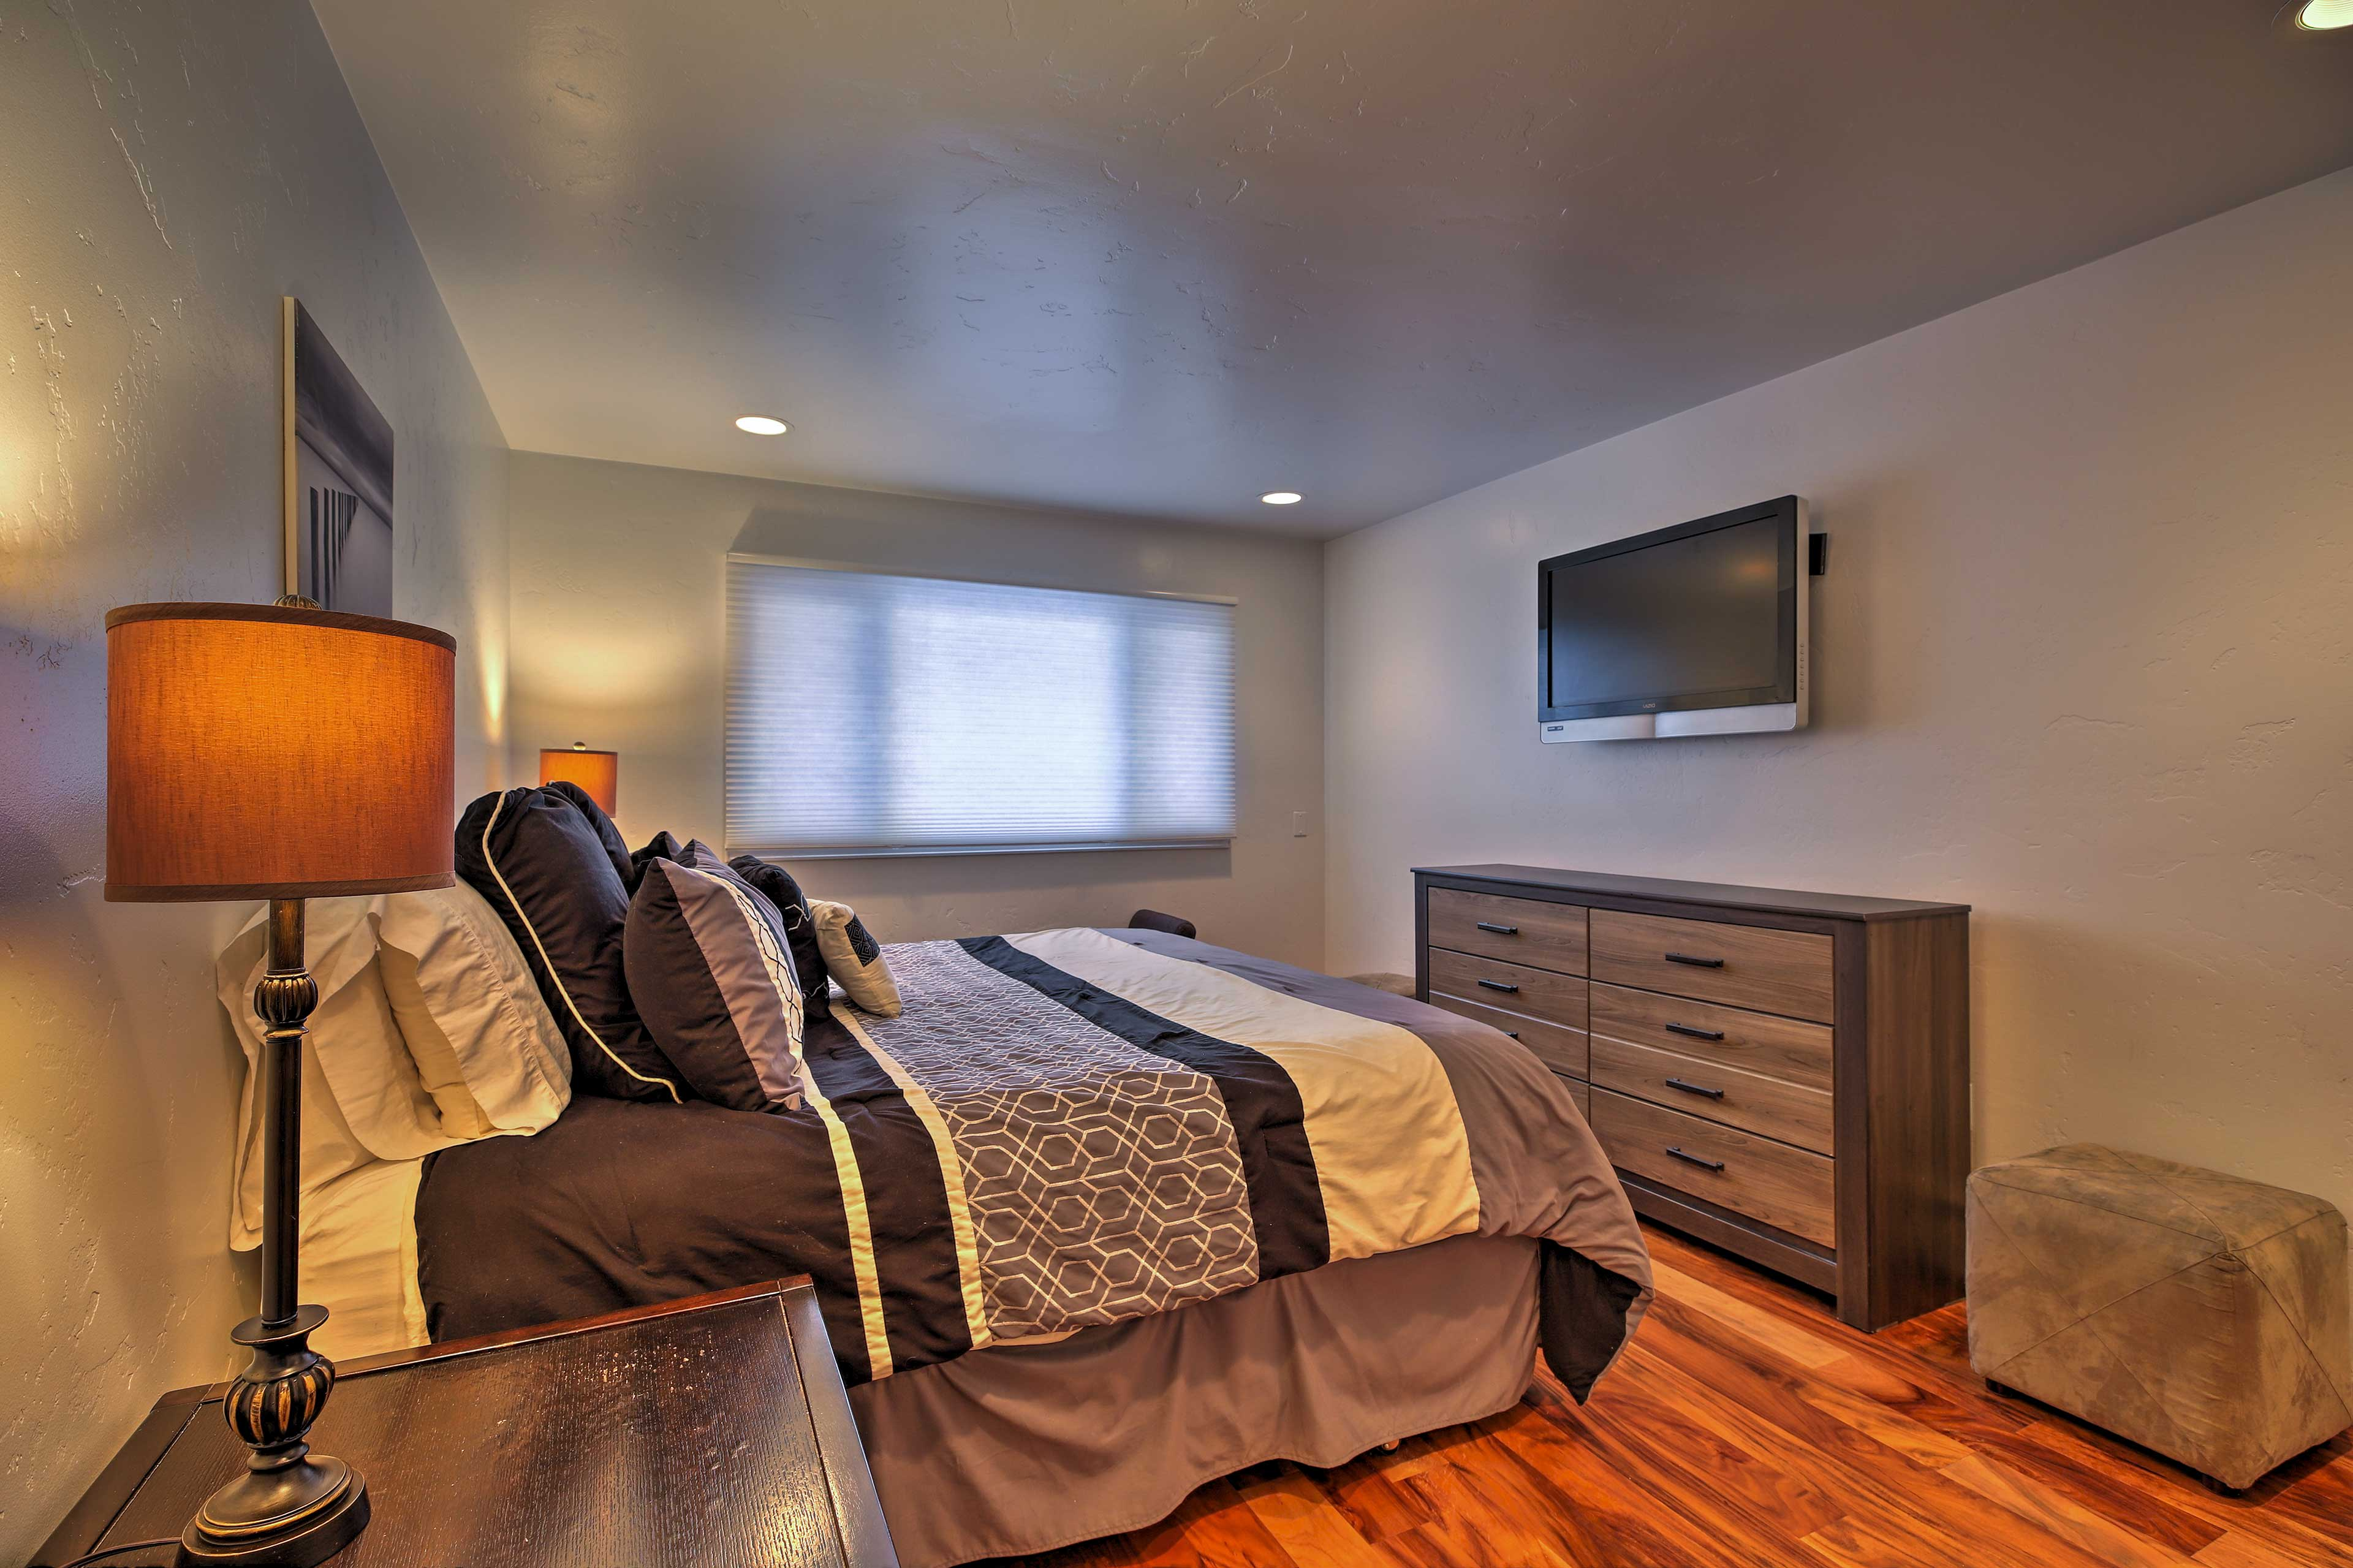 The master bedroom includes the added luxury of a flat-screen cable Smart TV.